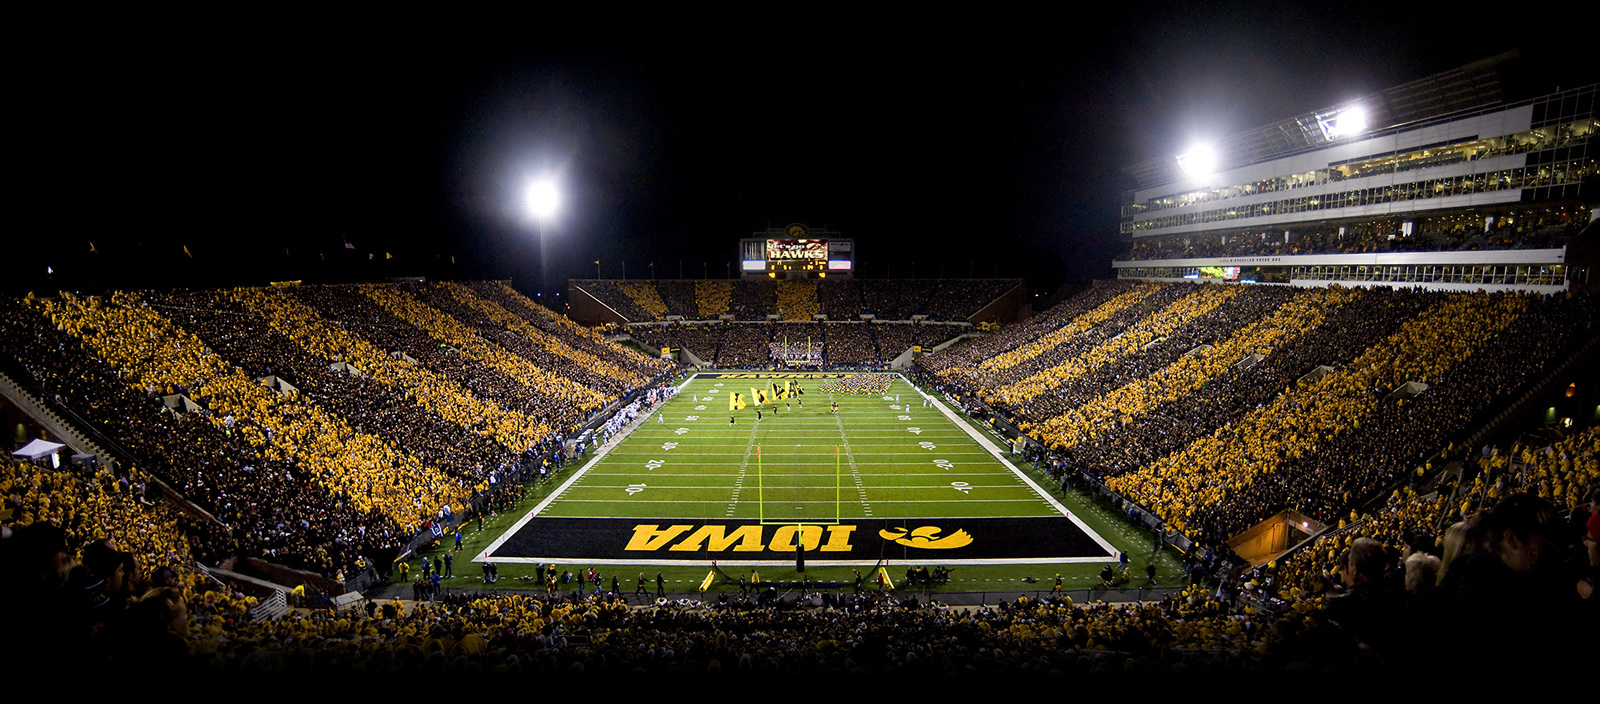 Iowa Hawkeye Screensavers And Wallpaper Wallpapersafari